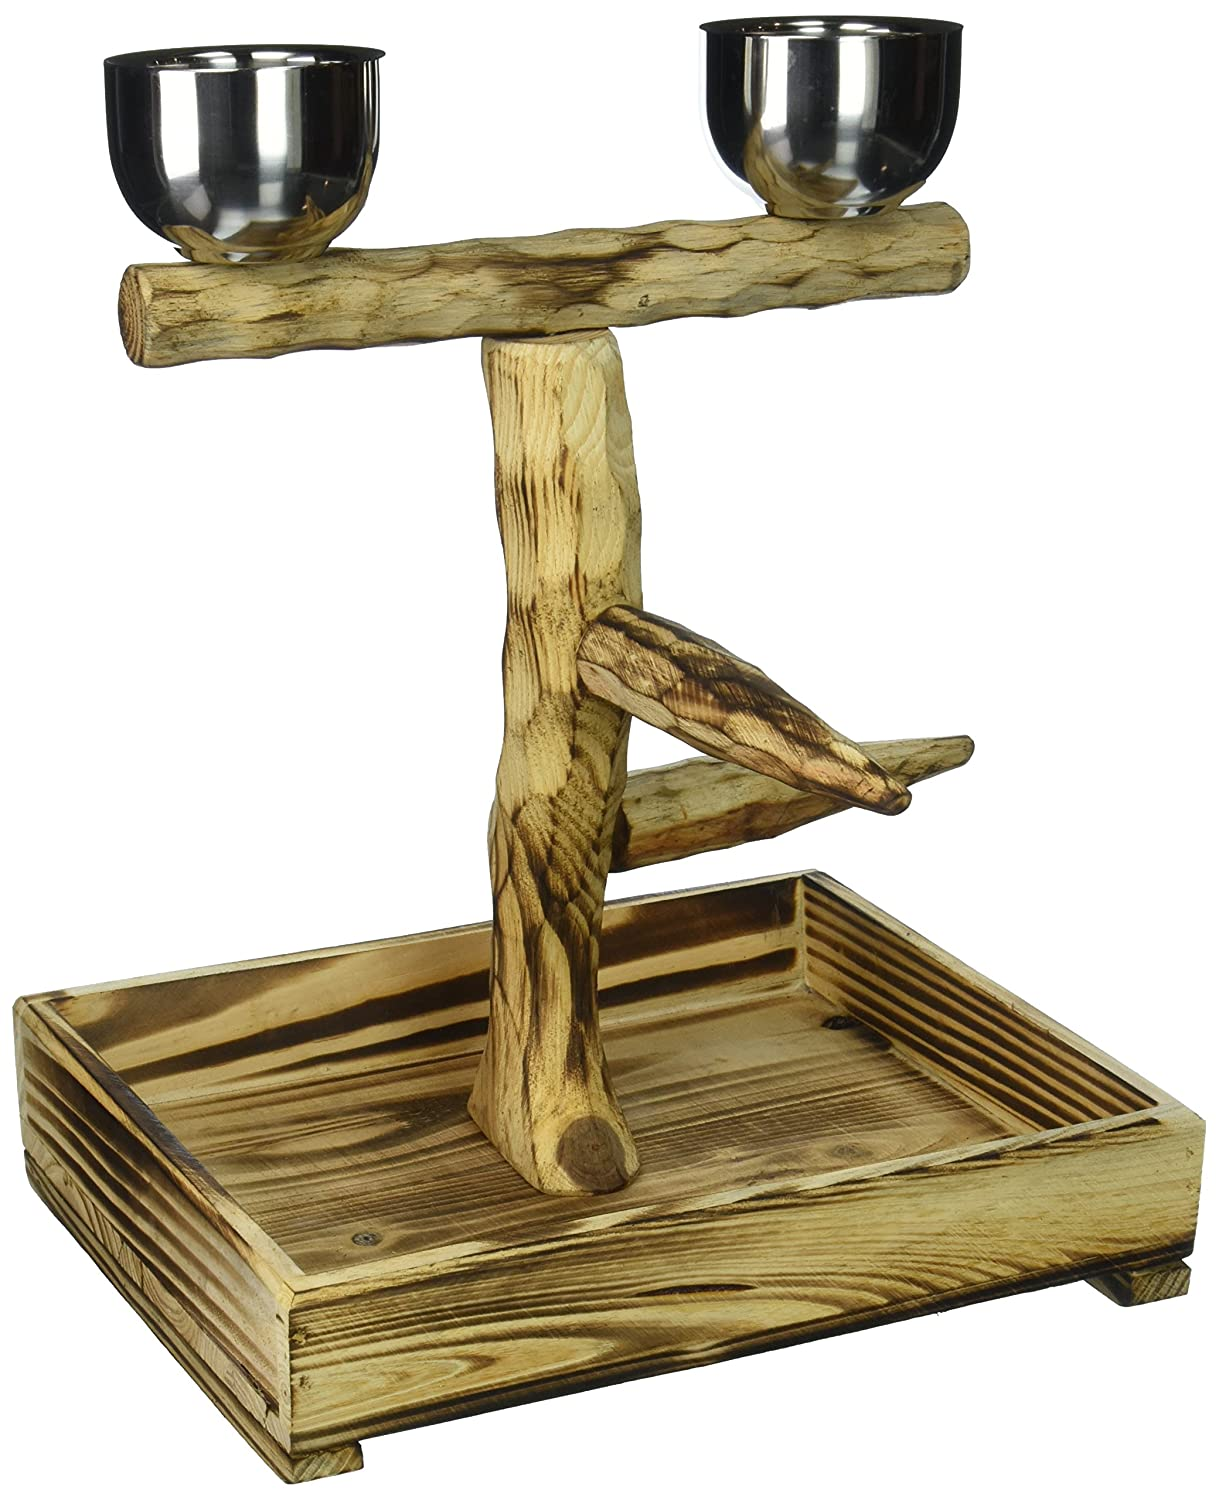 "Penn Plax Bird Perch With 2 Stainless Steel Feeding Cups and Wood Drop Tray (10.5"" X 8.9"" X 11.75"")"